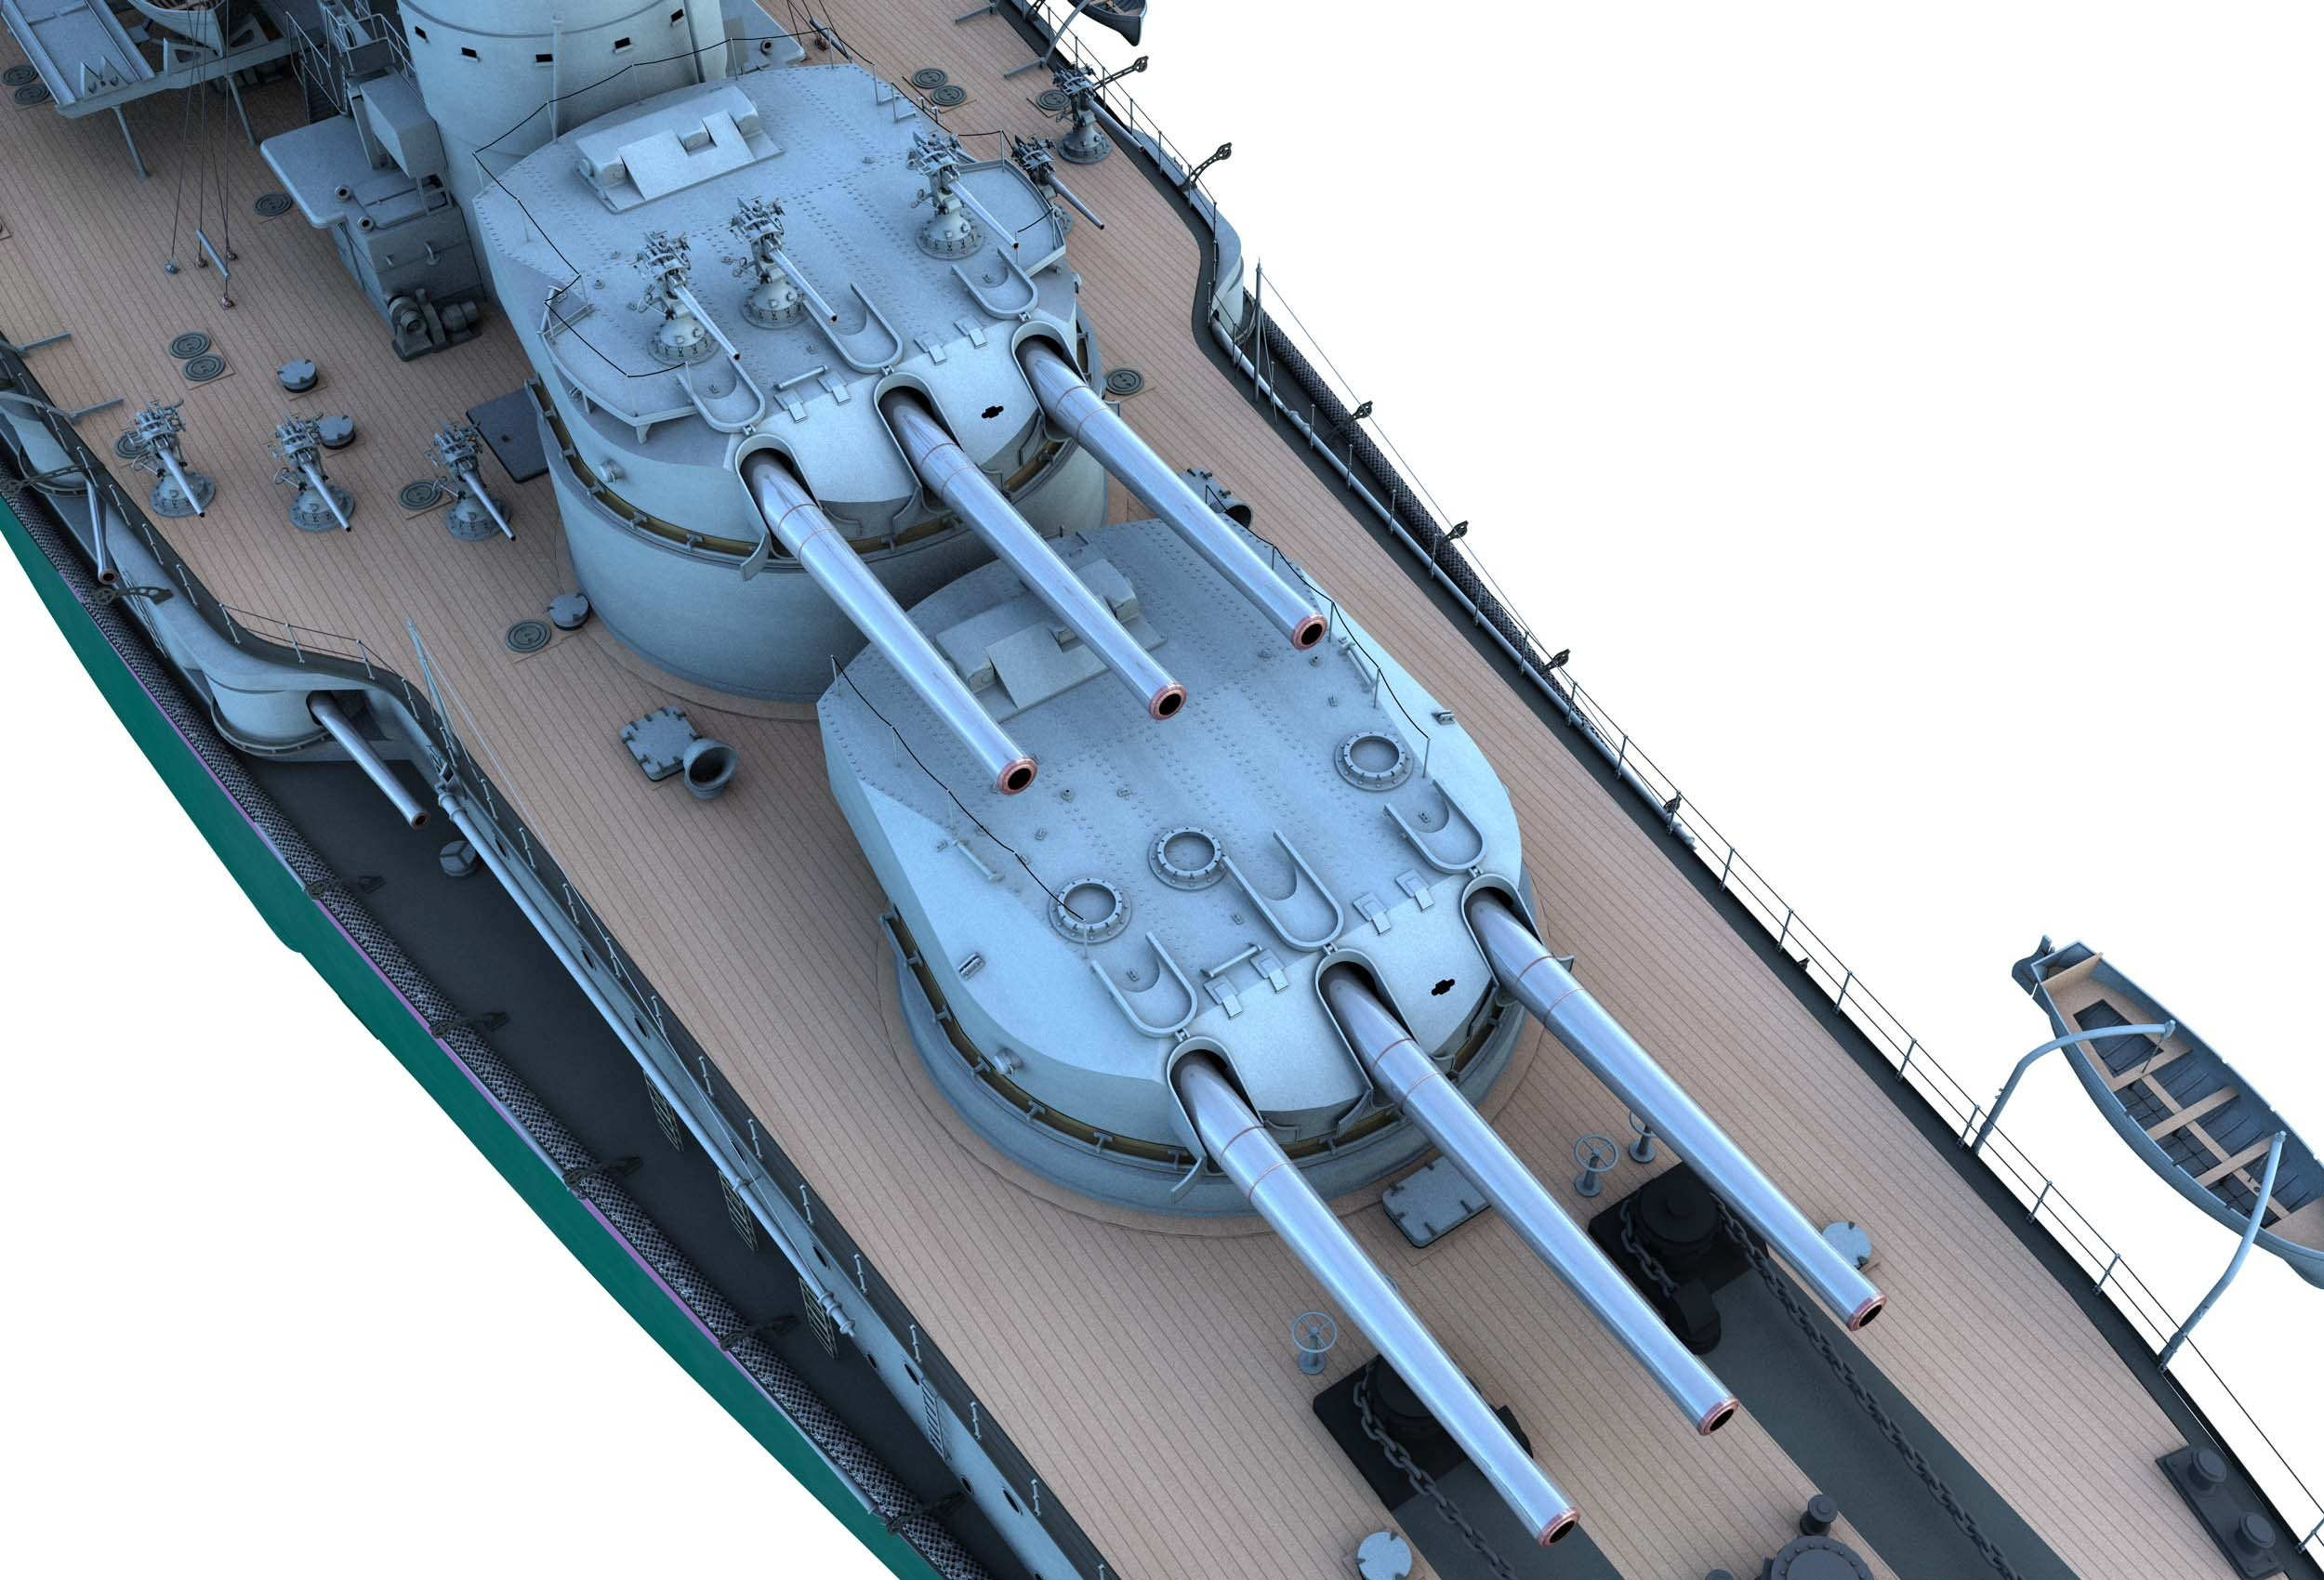 https://0901.nccdn.net/4_2/000/000/050/773/CK6-Partial-Ship-Bow-Starboard-Turrets-I-and-II-2500x1700.jpg